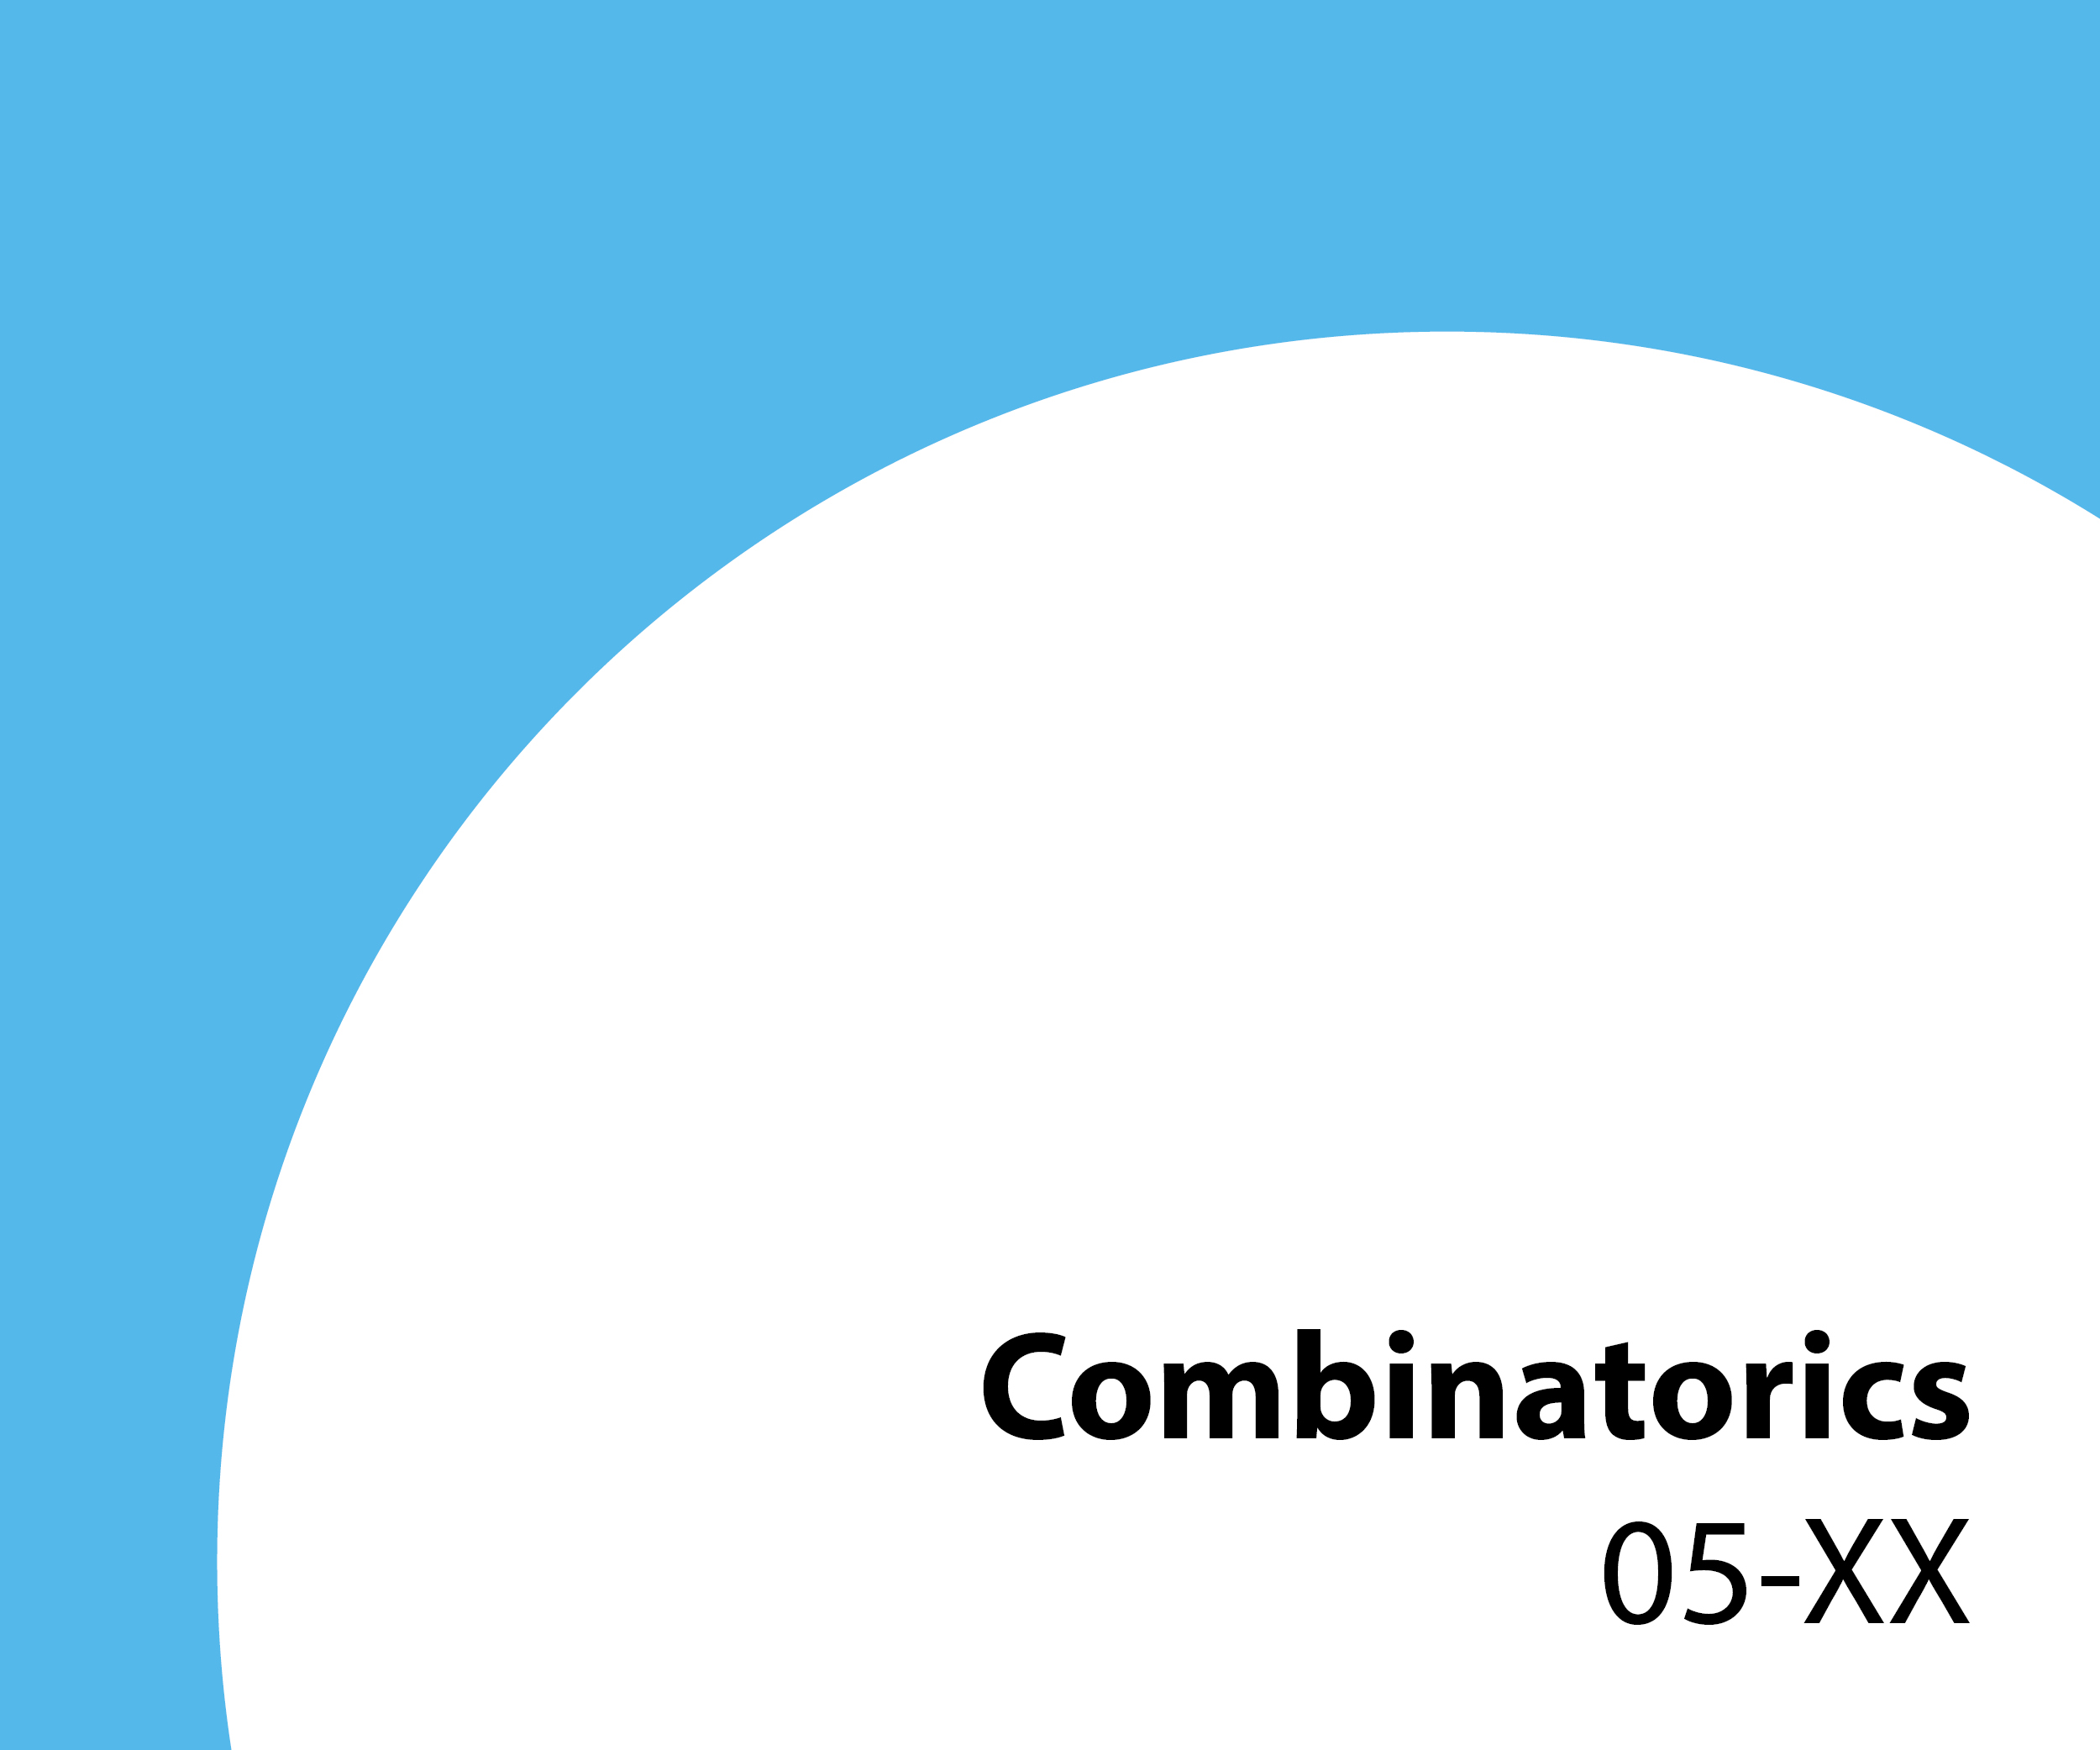 05-xx Combinatorics